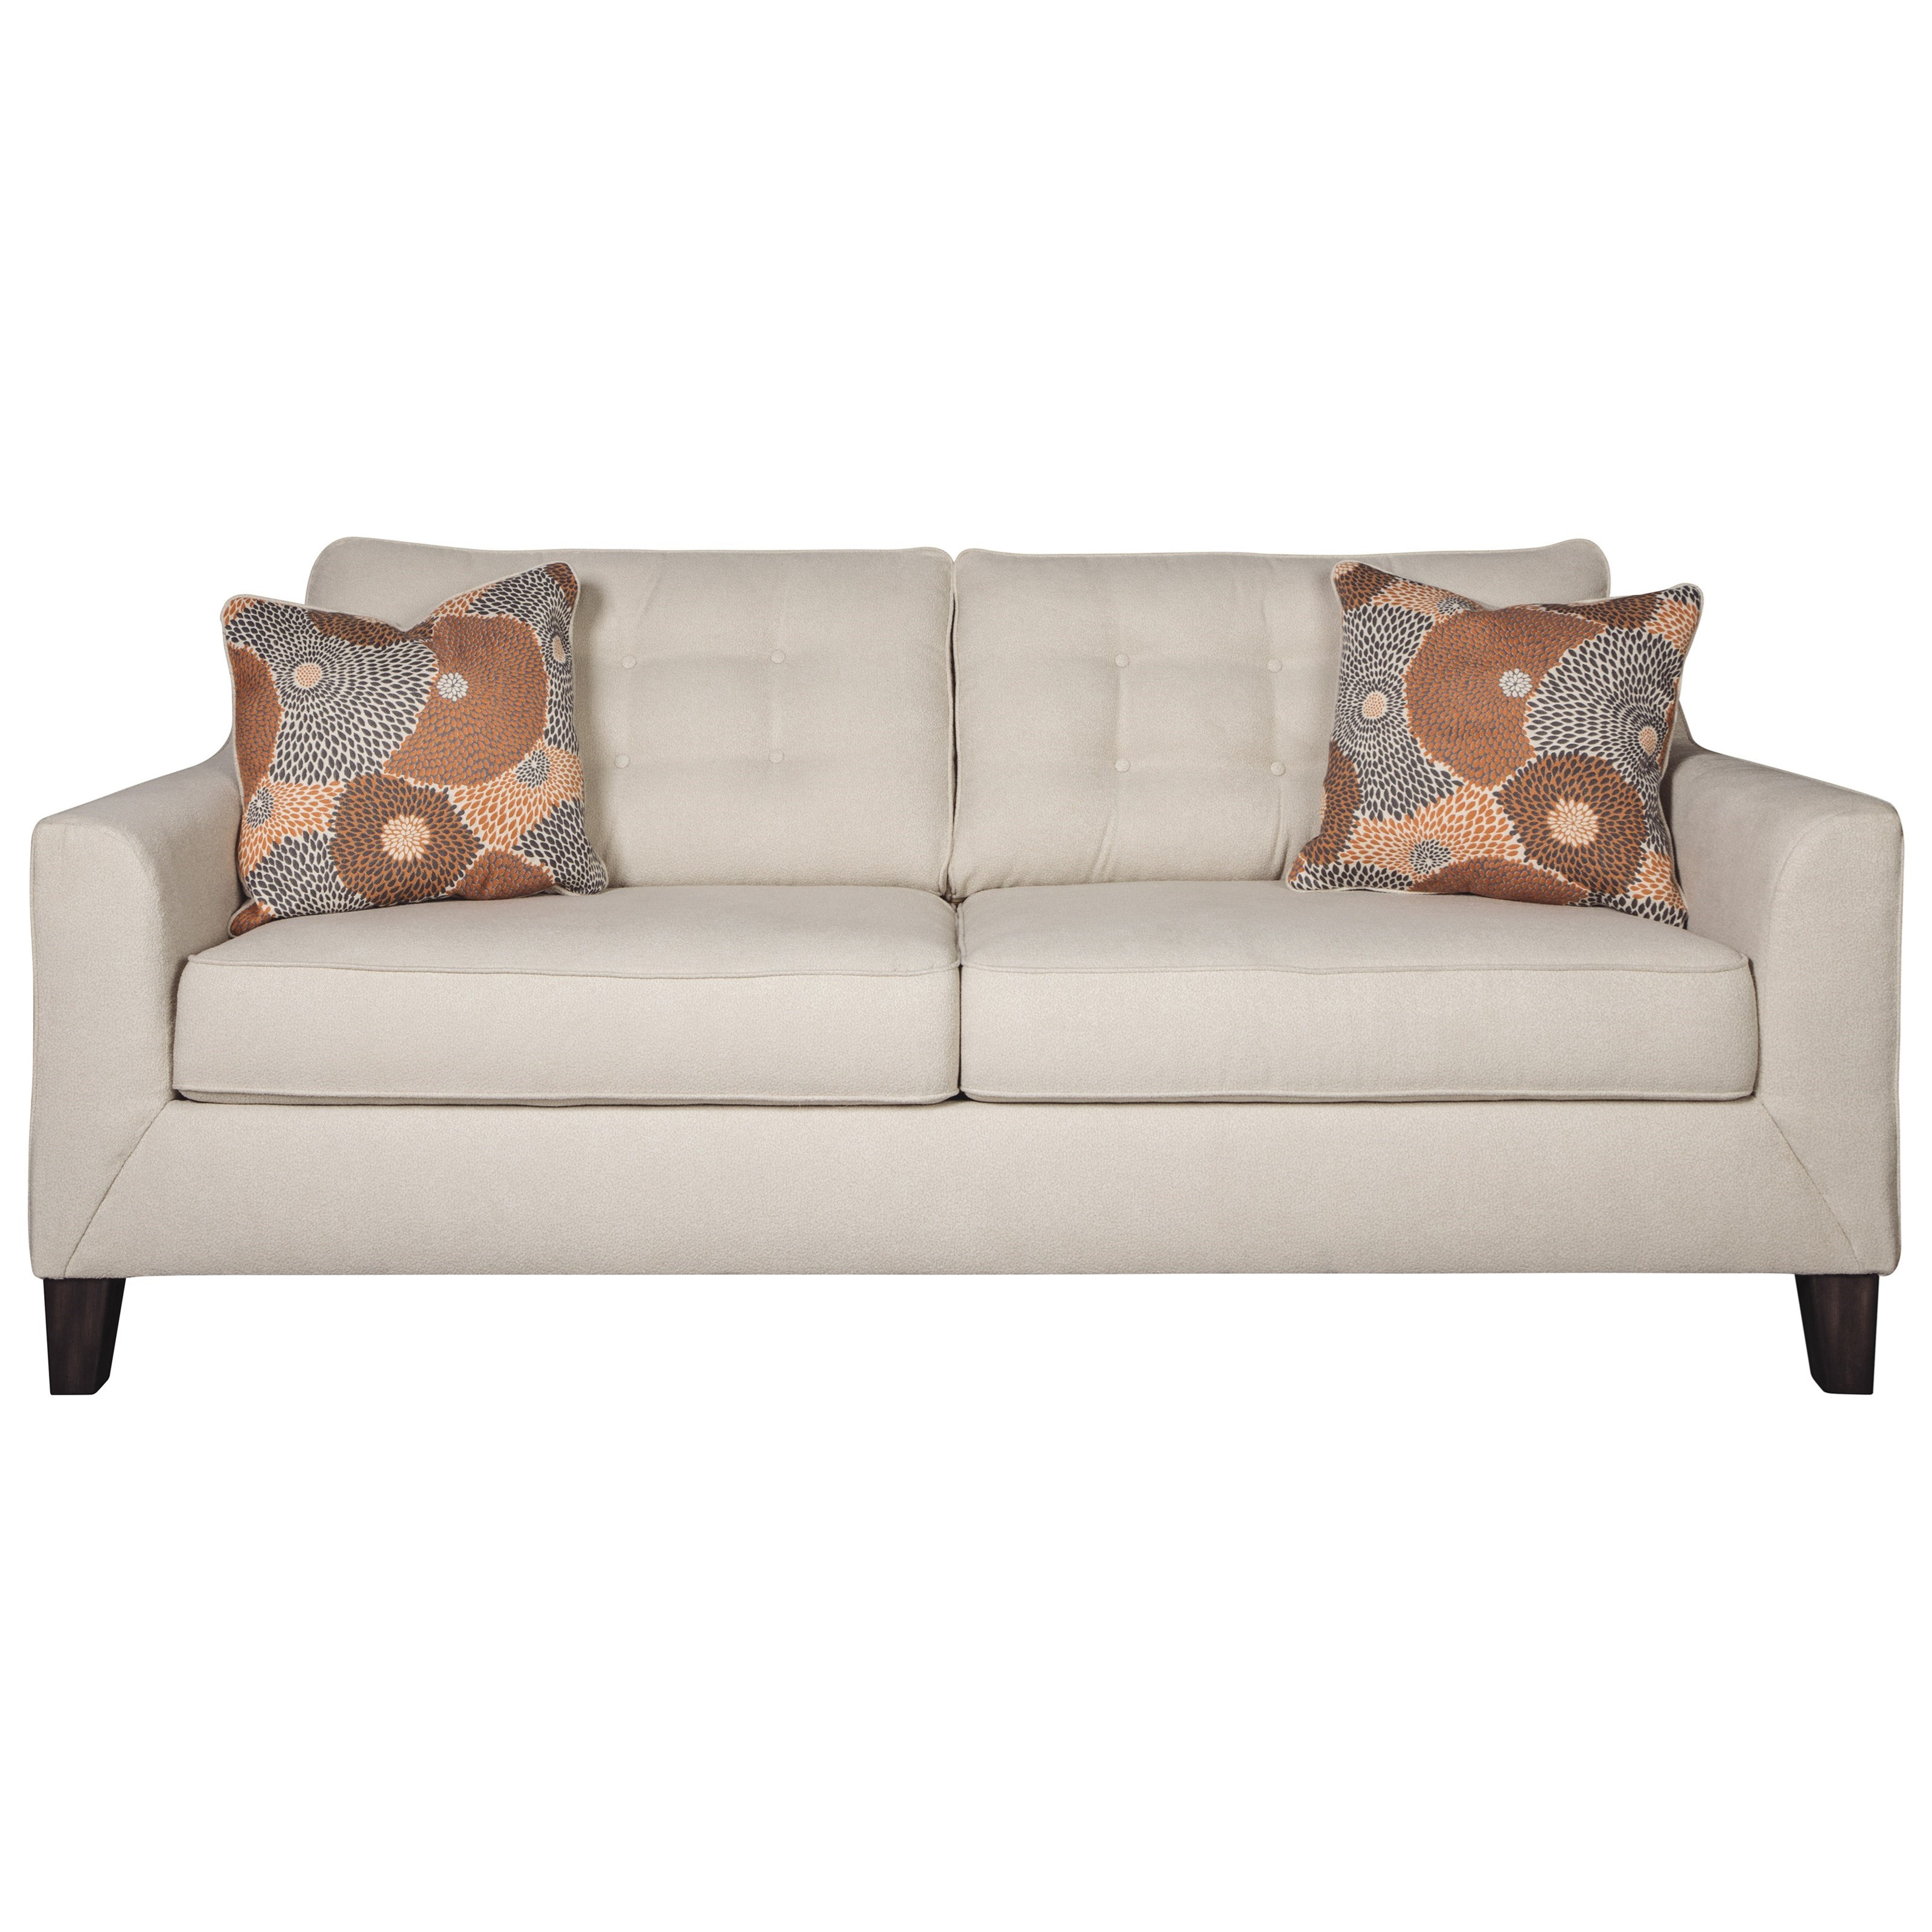 - Signature Design By Ashley Benissa Contemporary Queen Sofa Sleeper